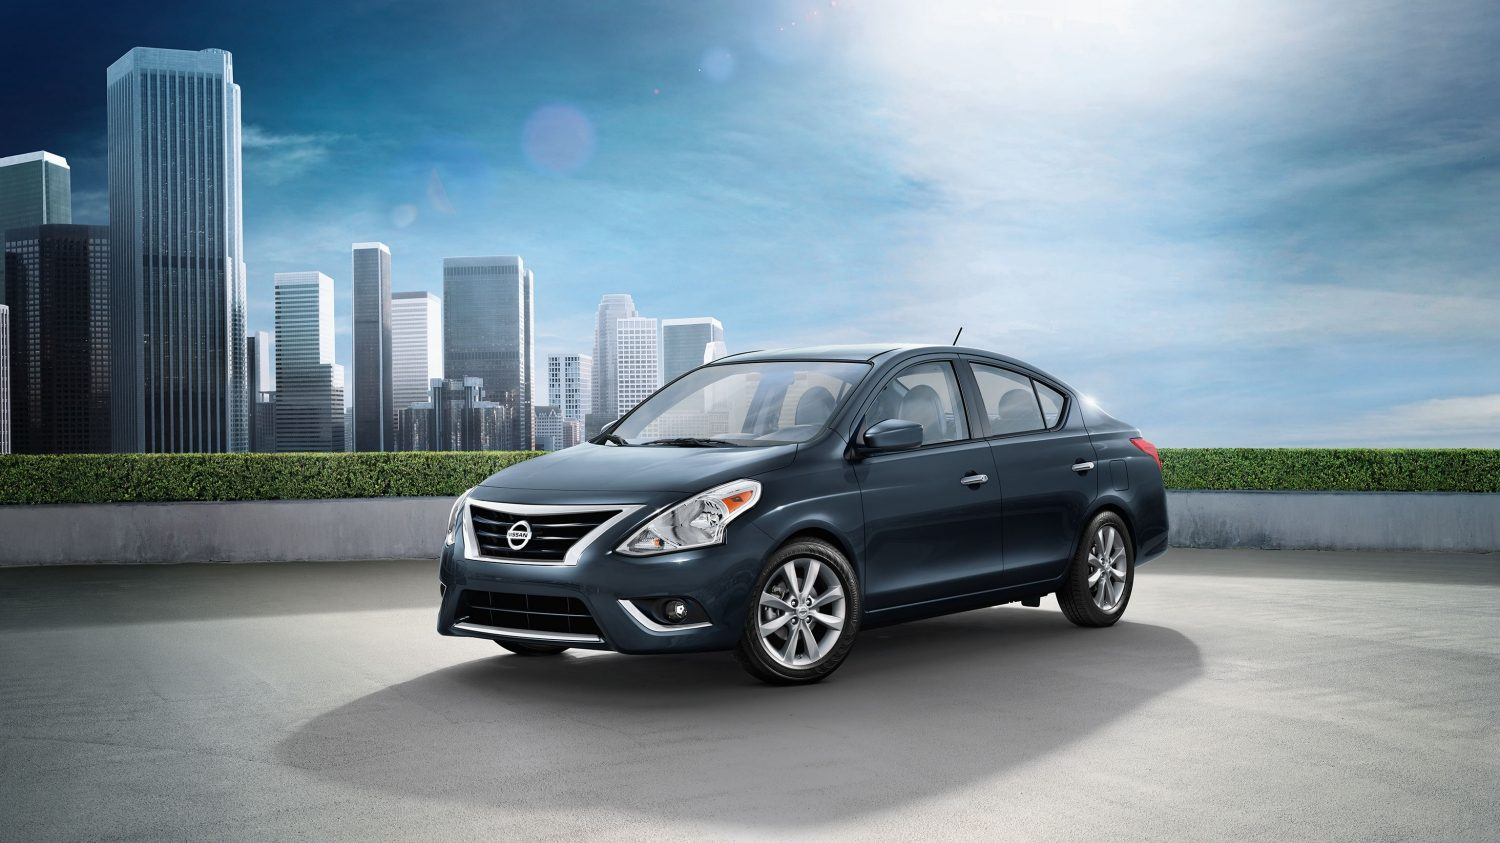 Nissan Versa profile on city street